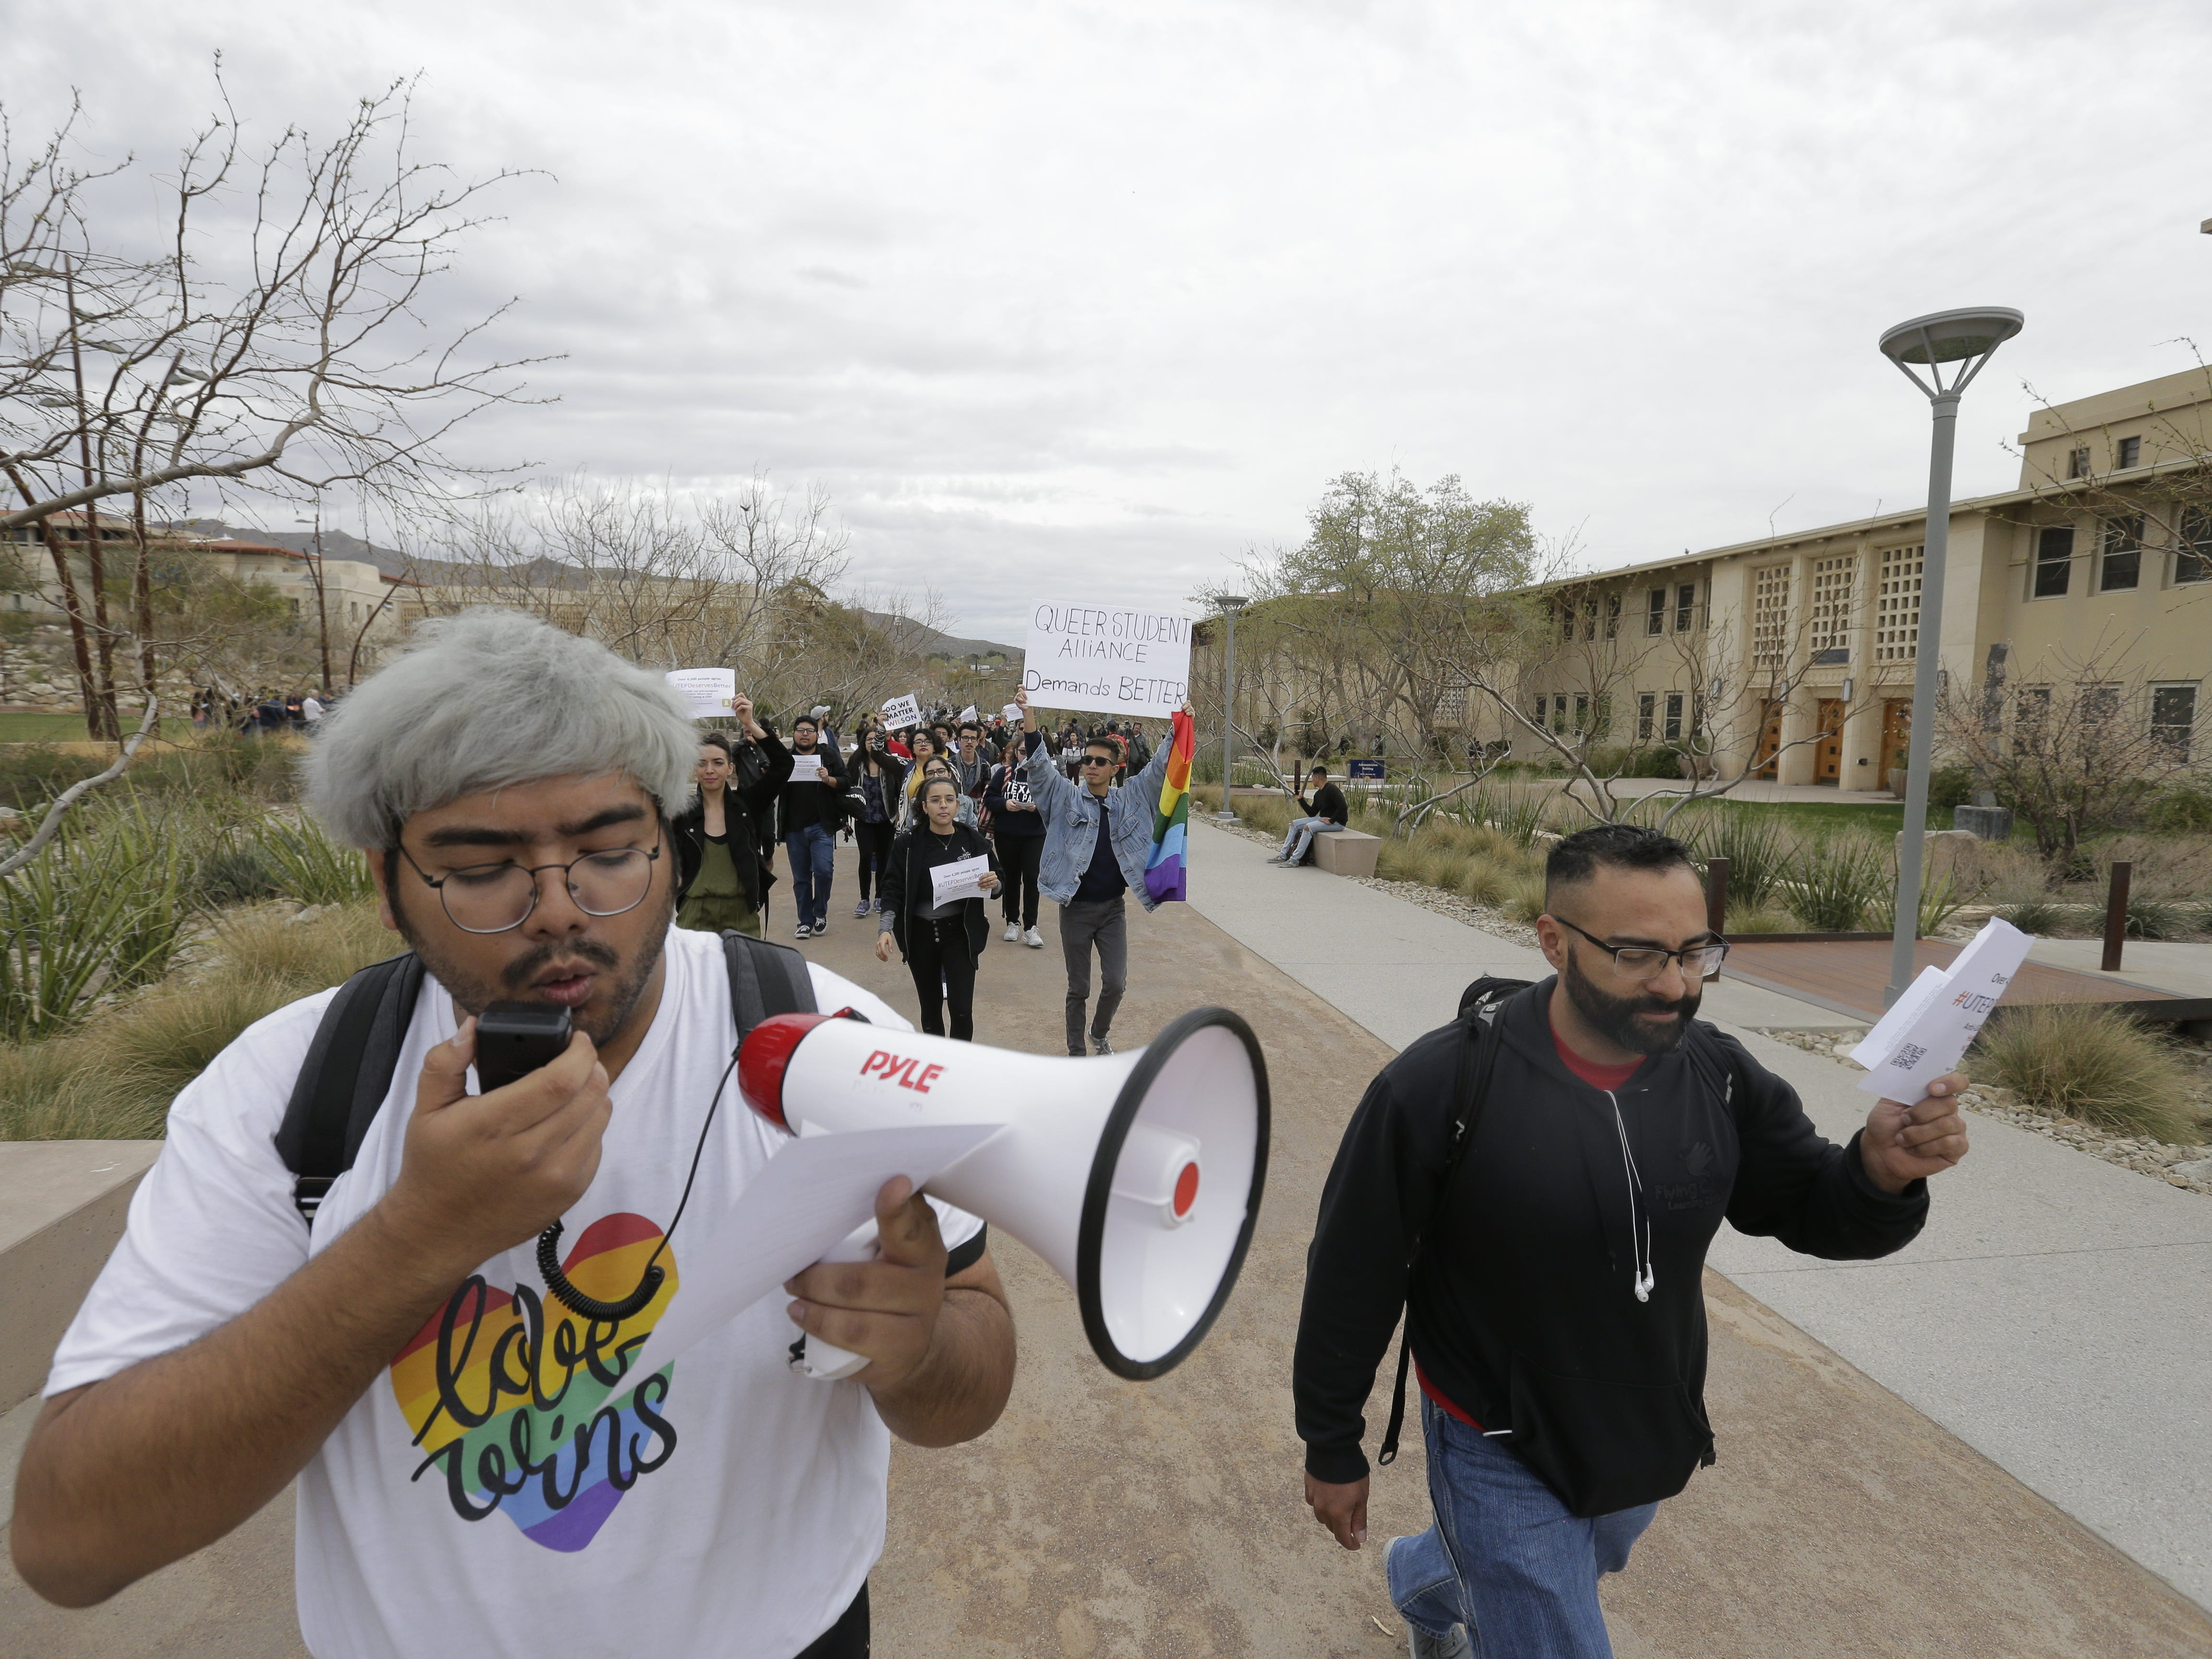 Michael Gutierrez, a computer science major, and other UTEP students on March 11 protest the appointment of Heather Wilson as the next president of the university.